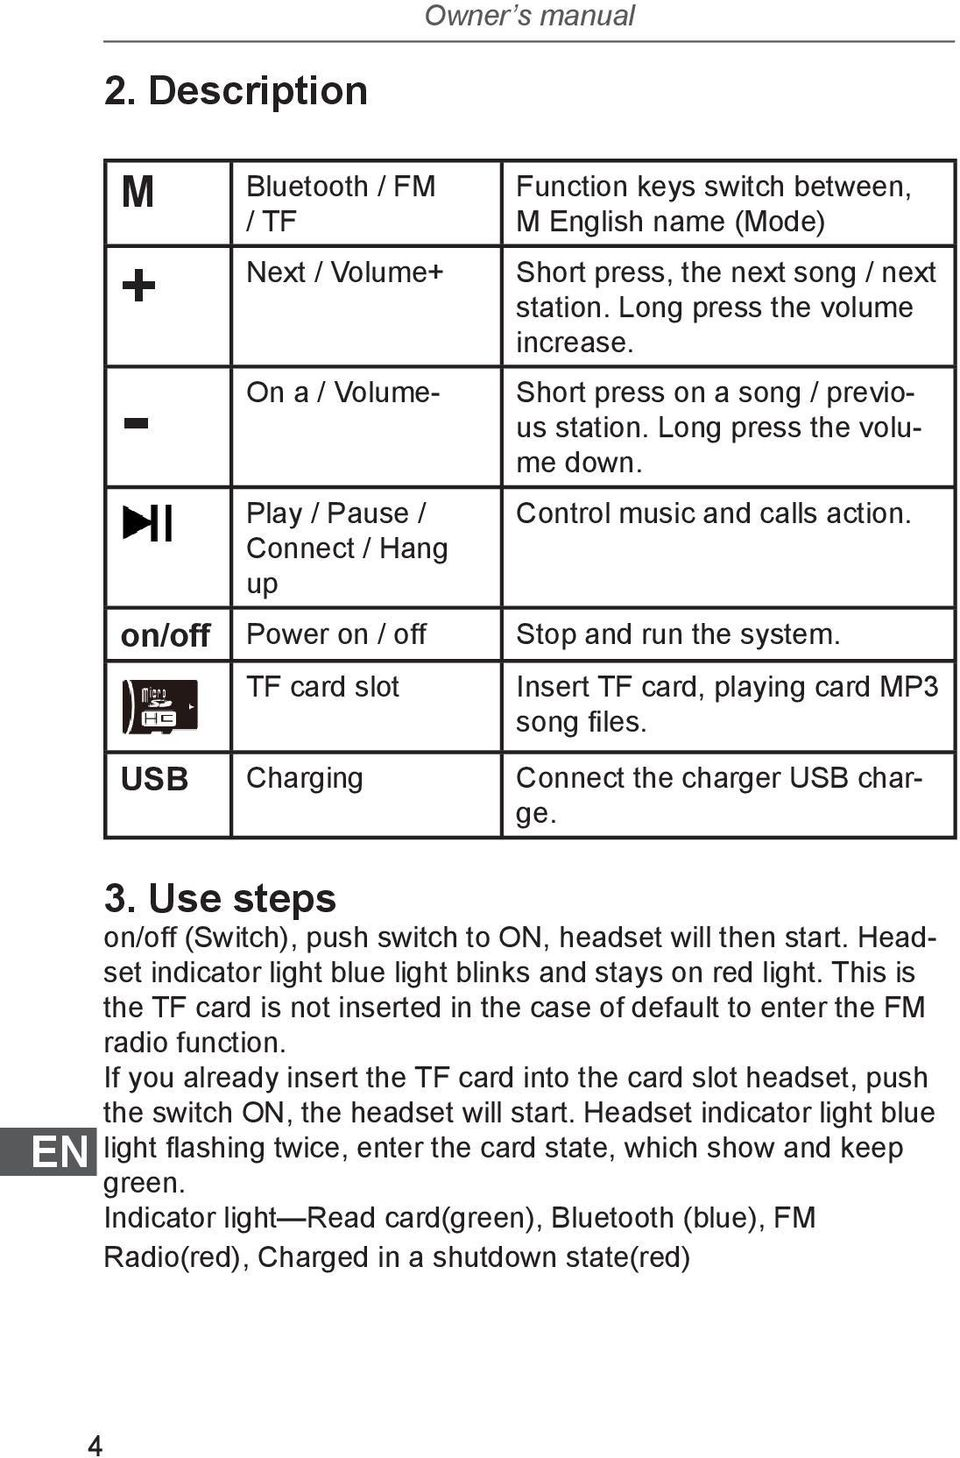 Long press the volume increase. Short press on a song / previous station. Long press the volume down. Control music and calls action. on/off Power on / off Stop and run the system.